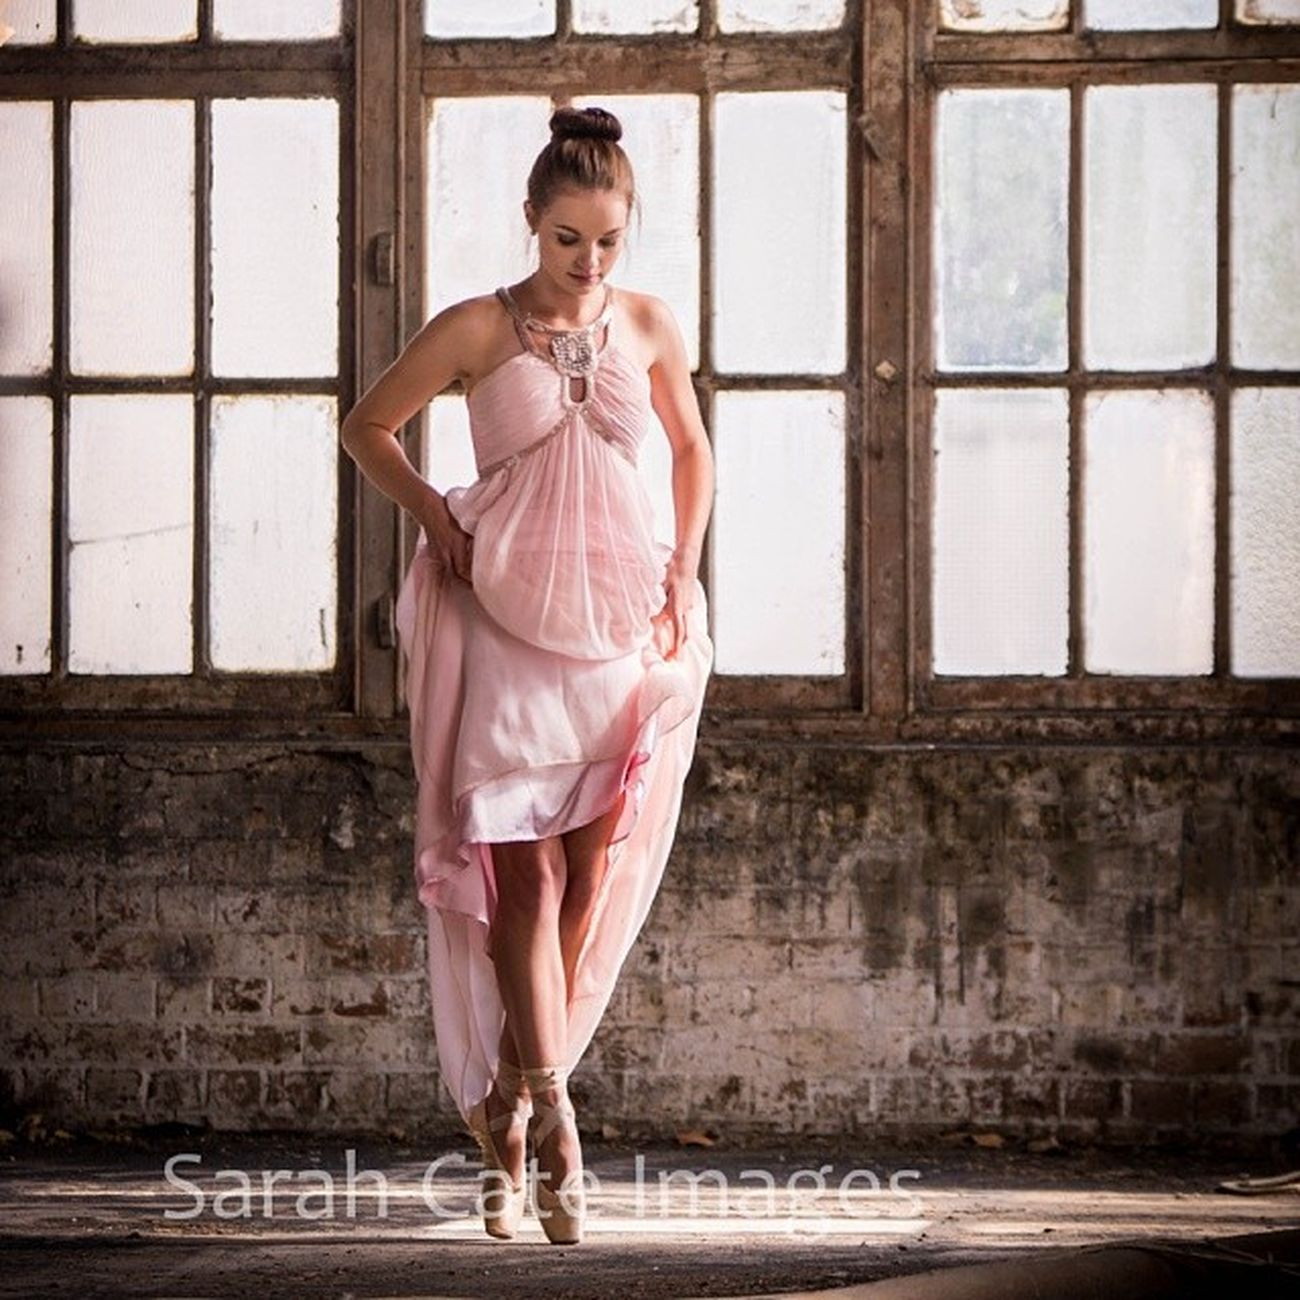 From a photo shoot a few months back...Ballerina Abandonedbuilding Cementworks